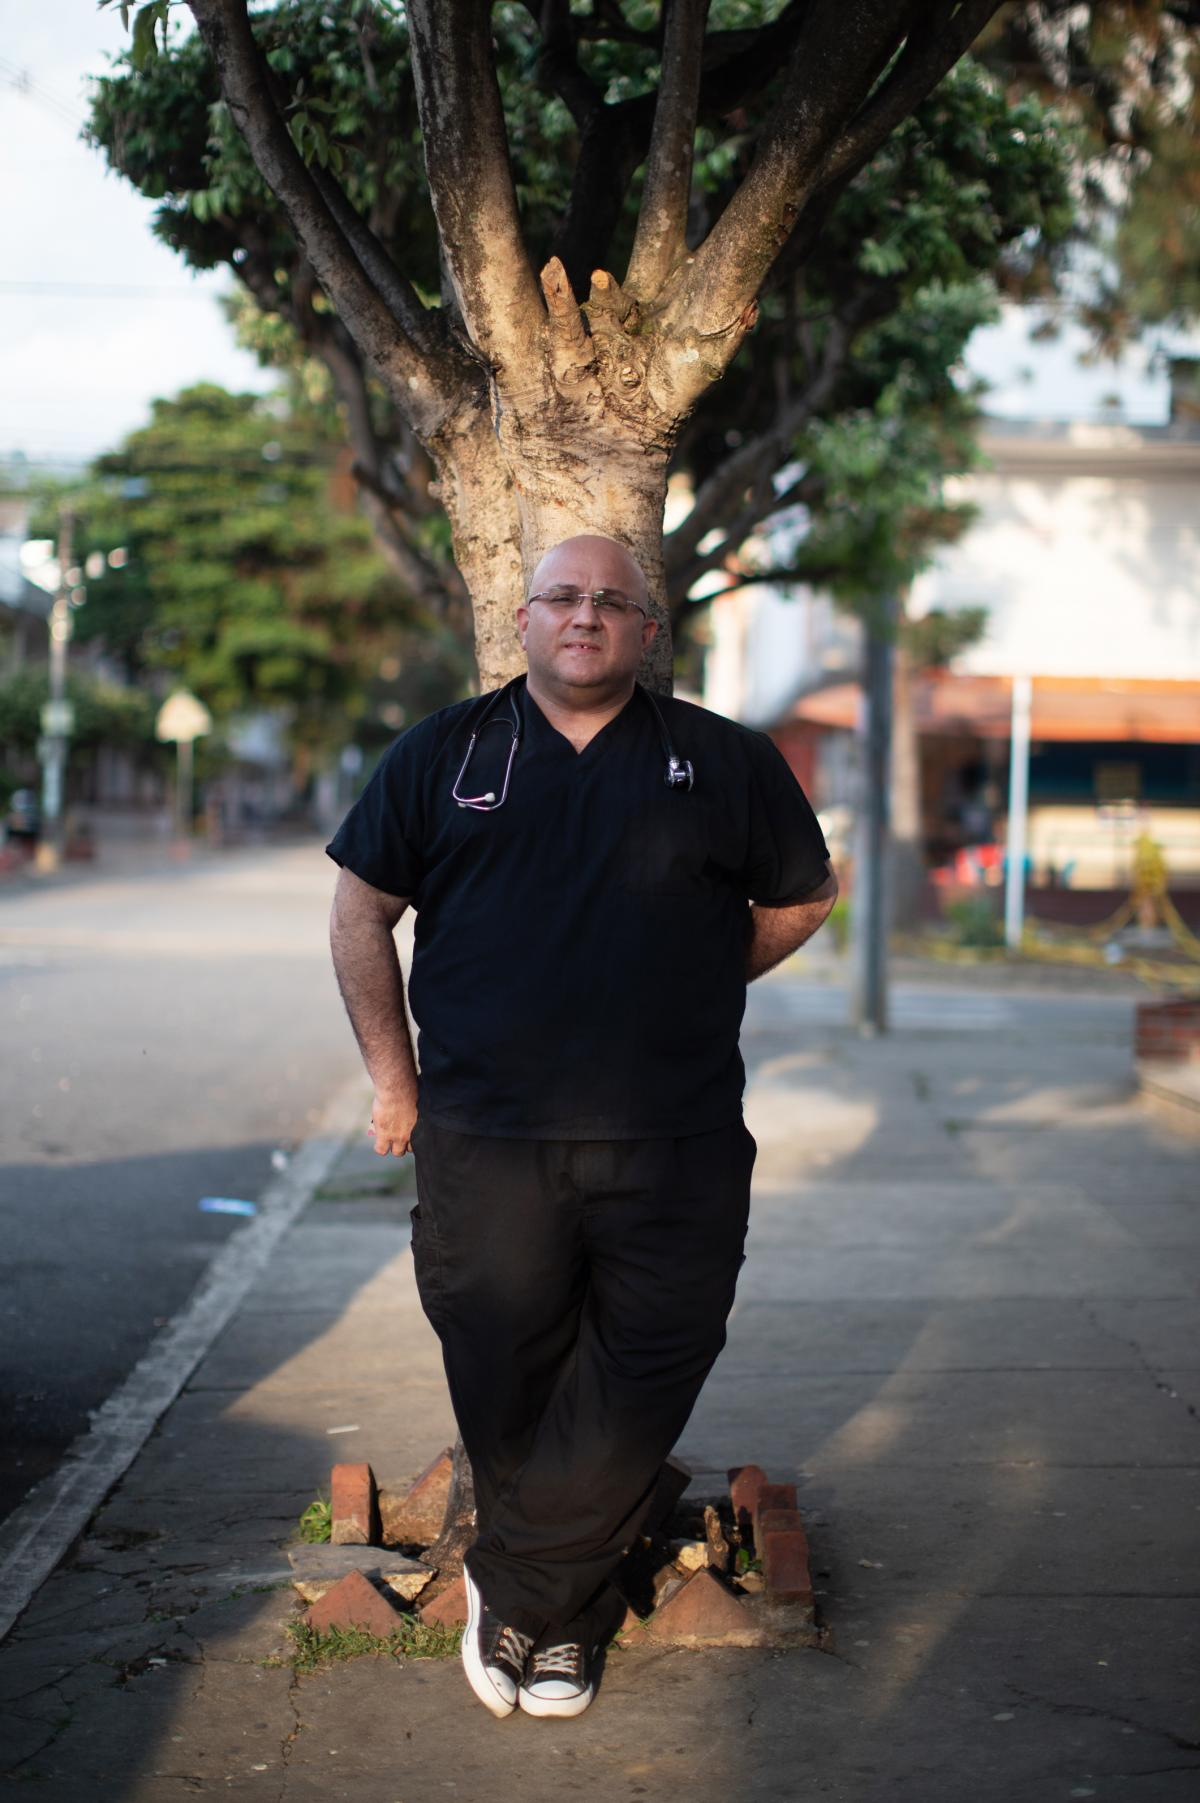 Dr. Roberto Rincón drives to small towns on the route of the caminantes to provide free medical care. As someone who fled Venezuela himself five years ago, he says he can't tell them to stop walking.